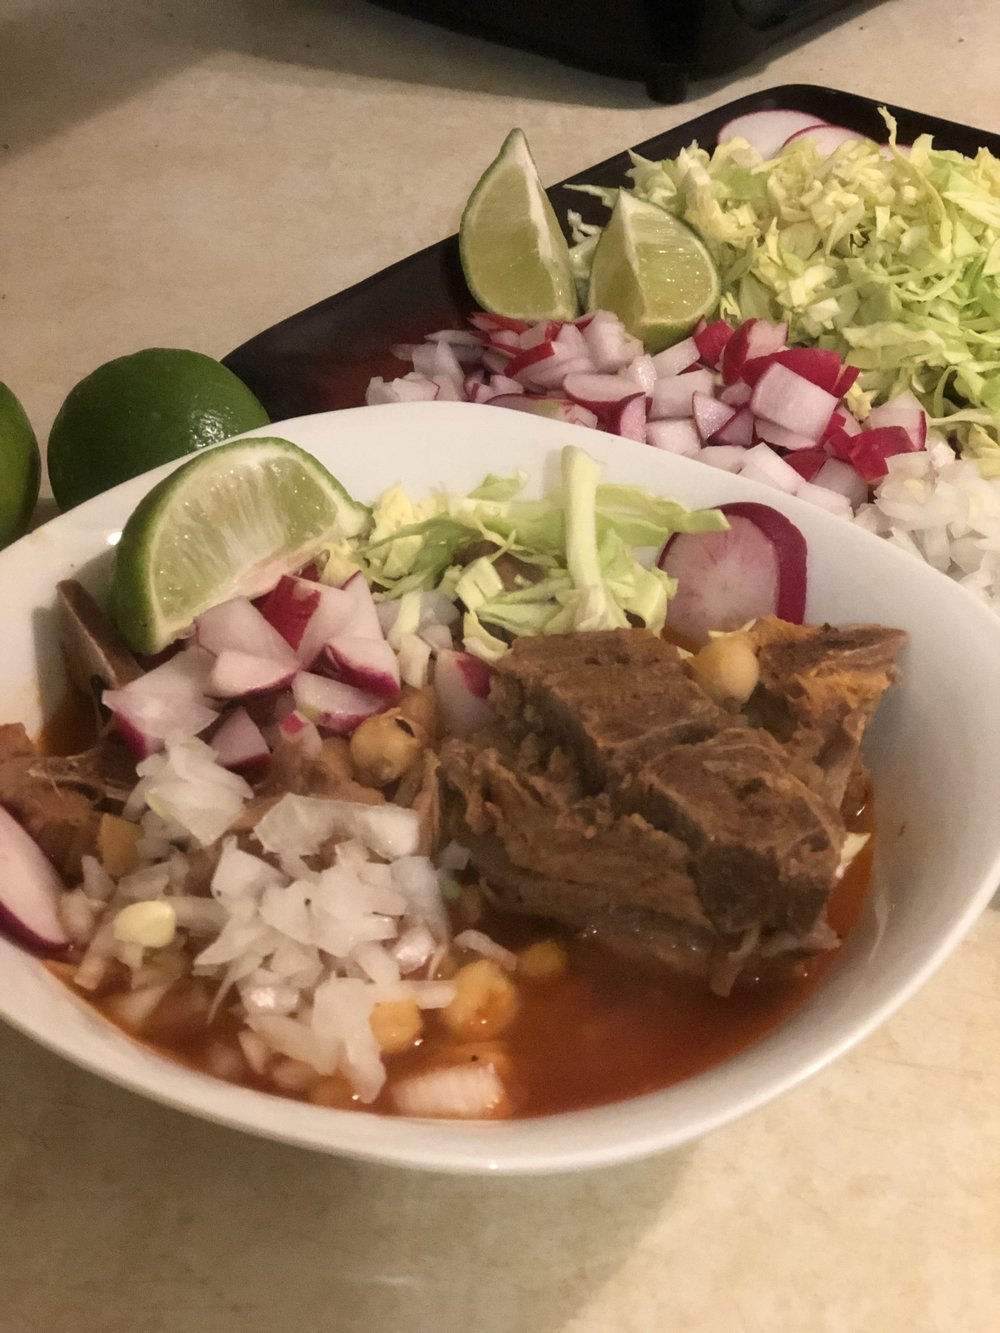 Andrea Fenise Memphis Fashion Blogger and Memphis Food Blogger shares an authentic Mexican Pozole Recipe